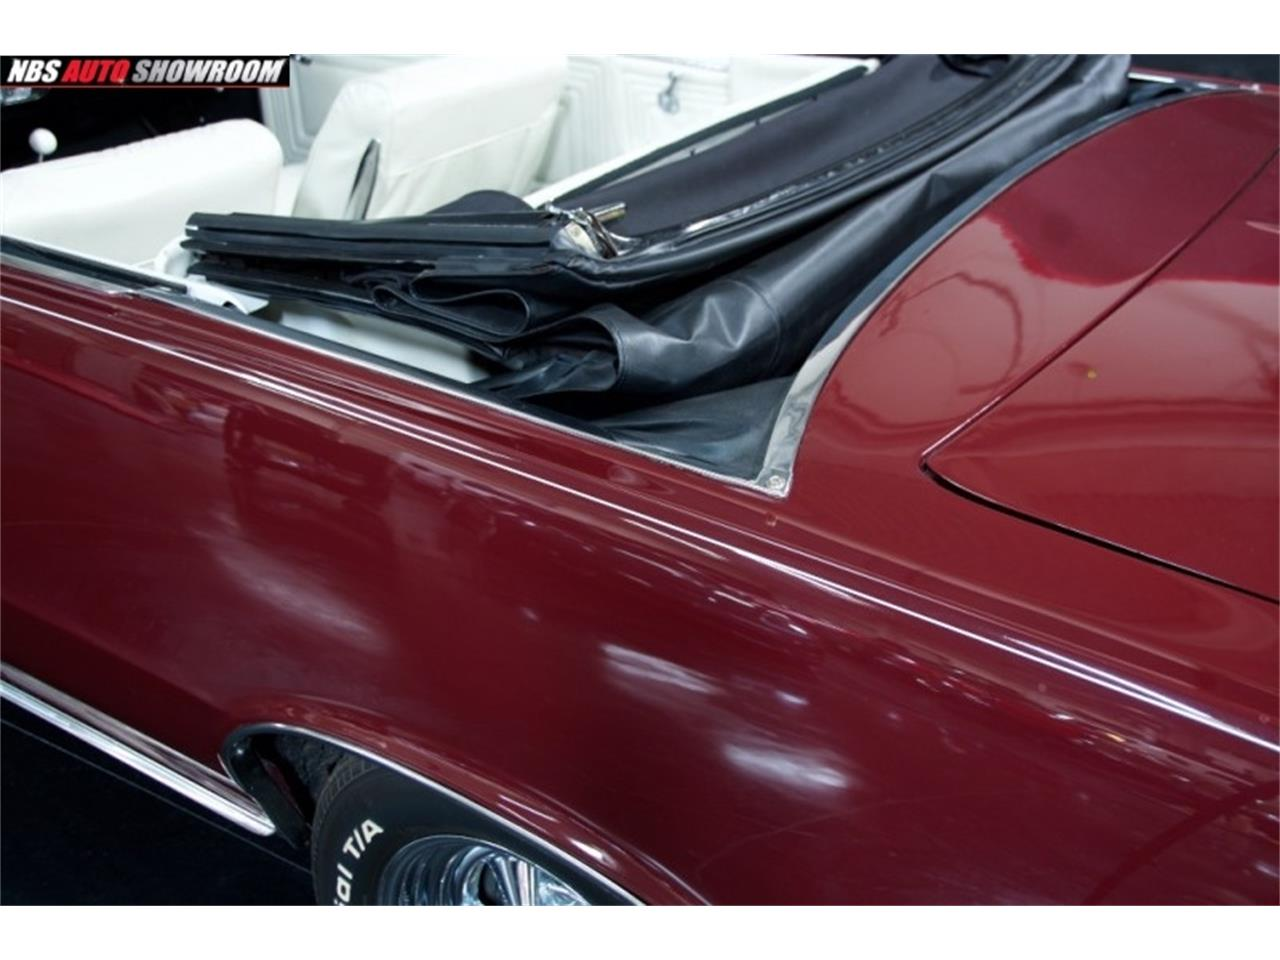 Large Picture of 1965 Pontiac GTO located in Milpitas California - $55,547.00 Offered by NBS Auto Showroom - OWIJ